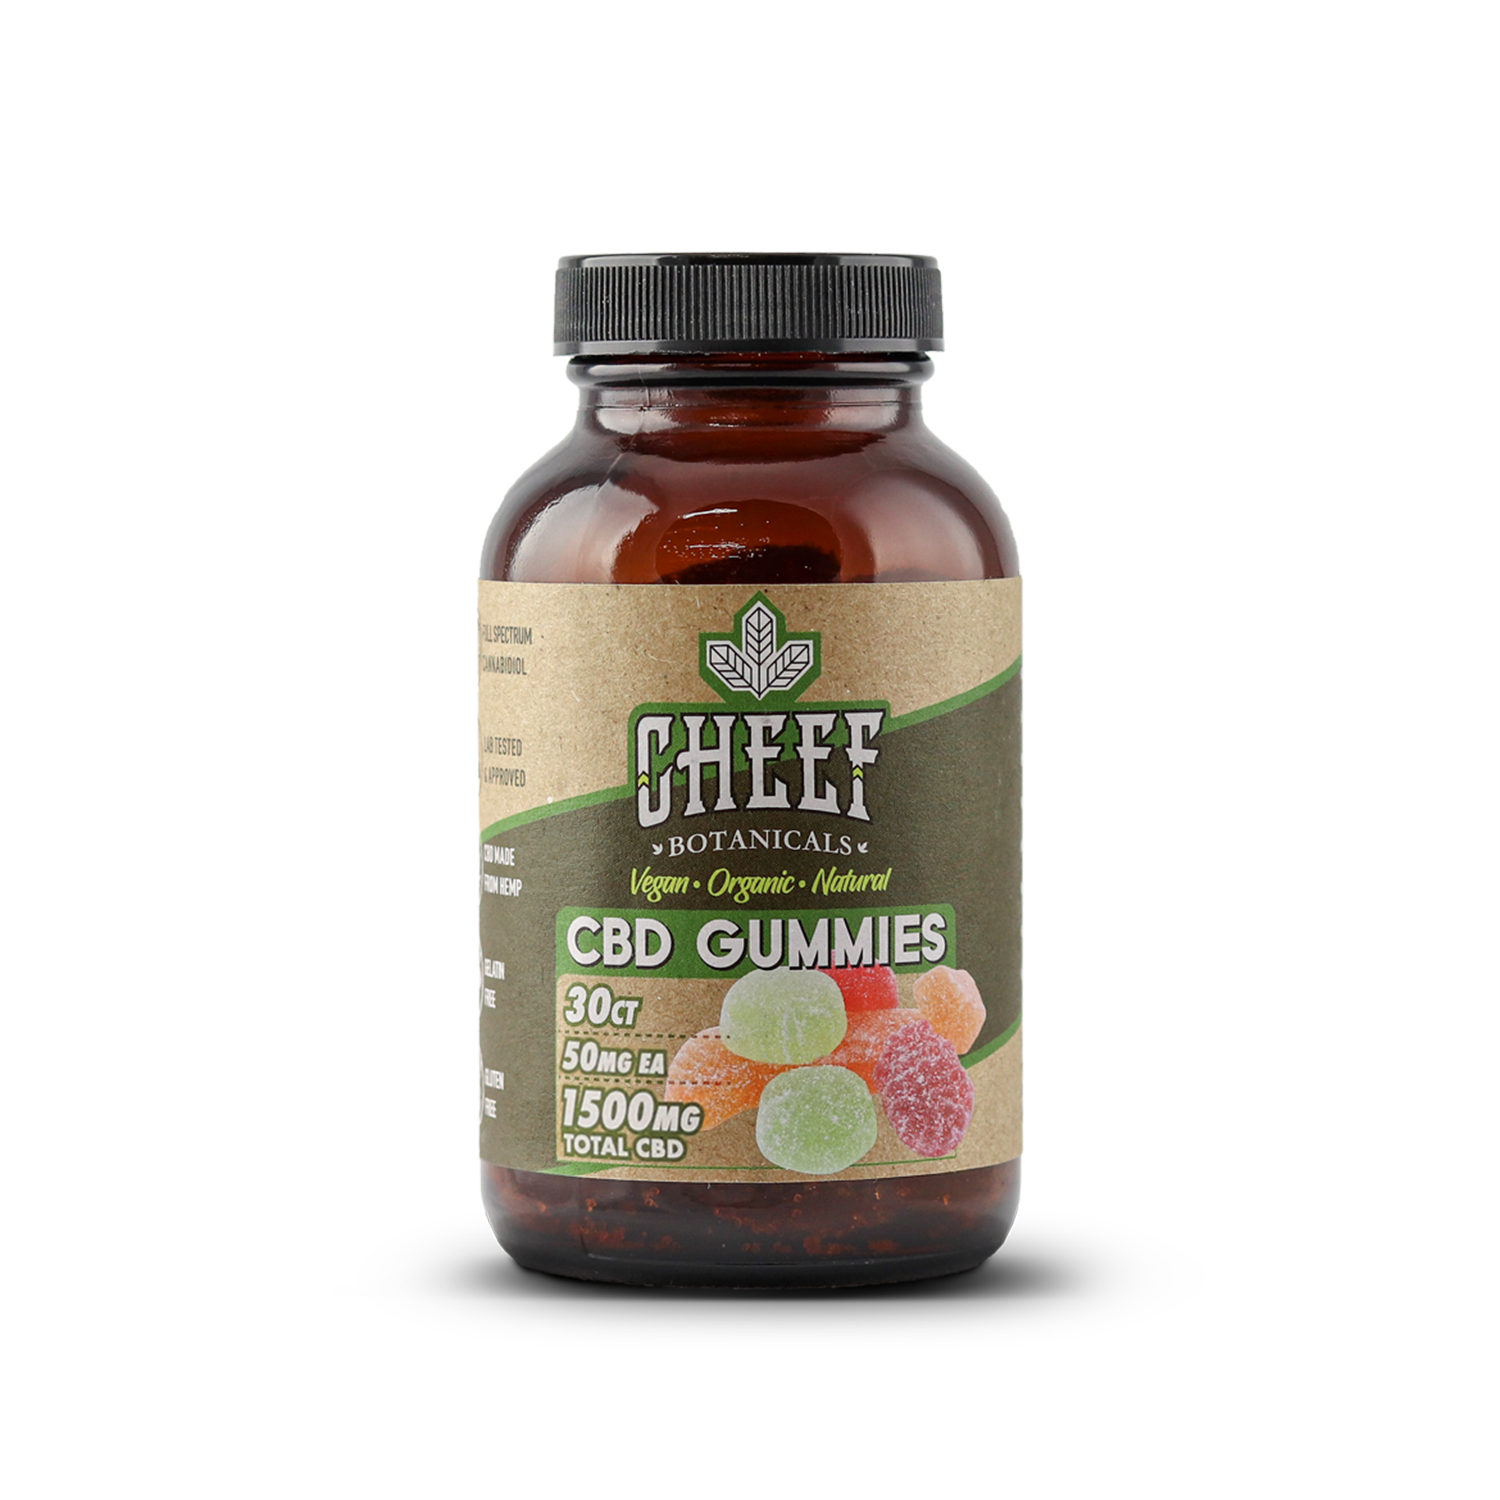 Cheef Botanicals Gummies | Vegan 50mg 30ct - Full Spectrum CBD